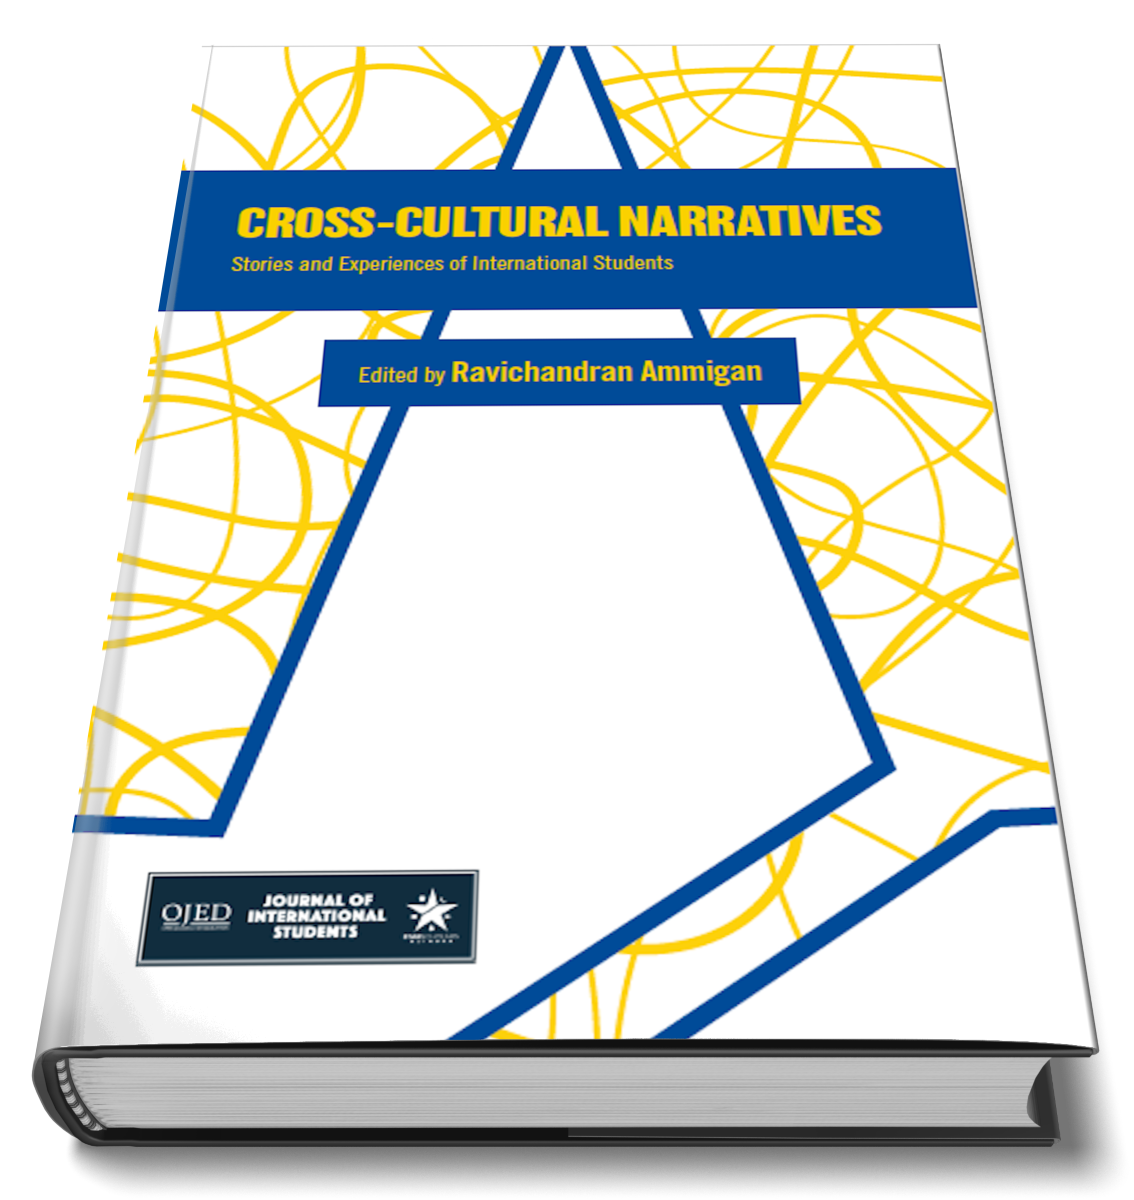 View 2021: Cross-Cultural Narratives: Stories and Experiences of International Students